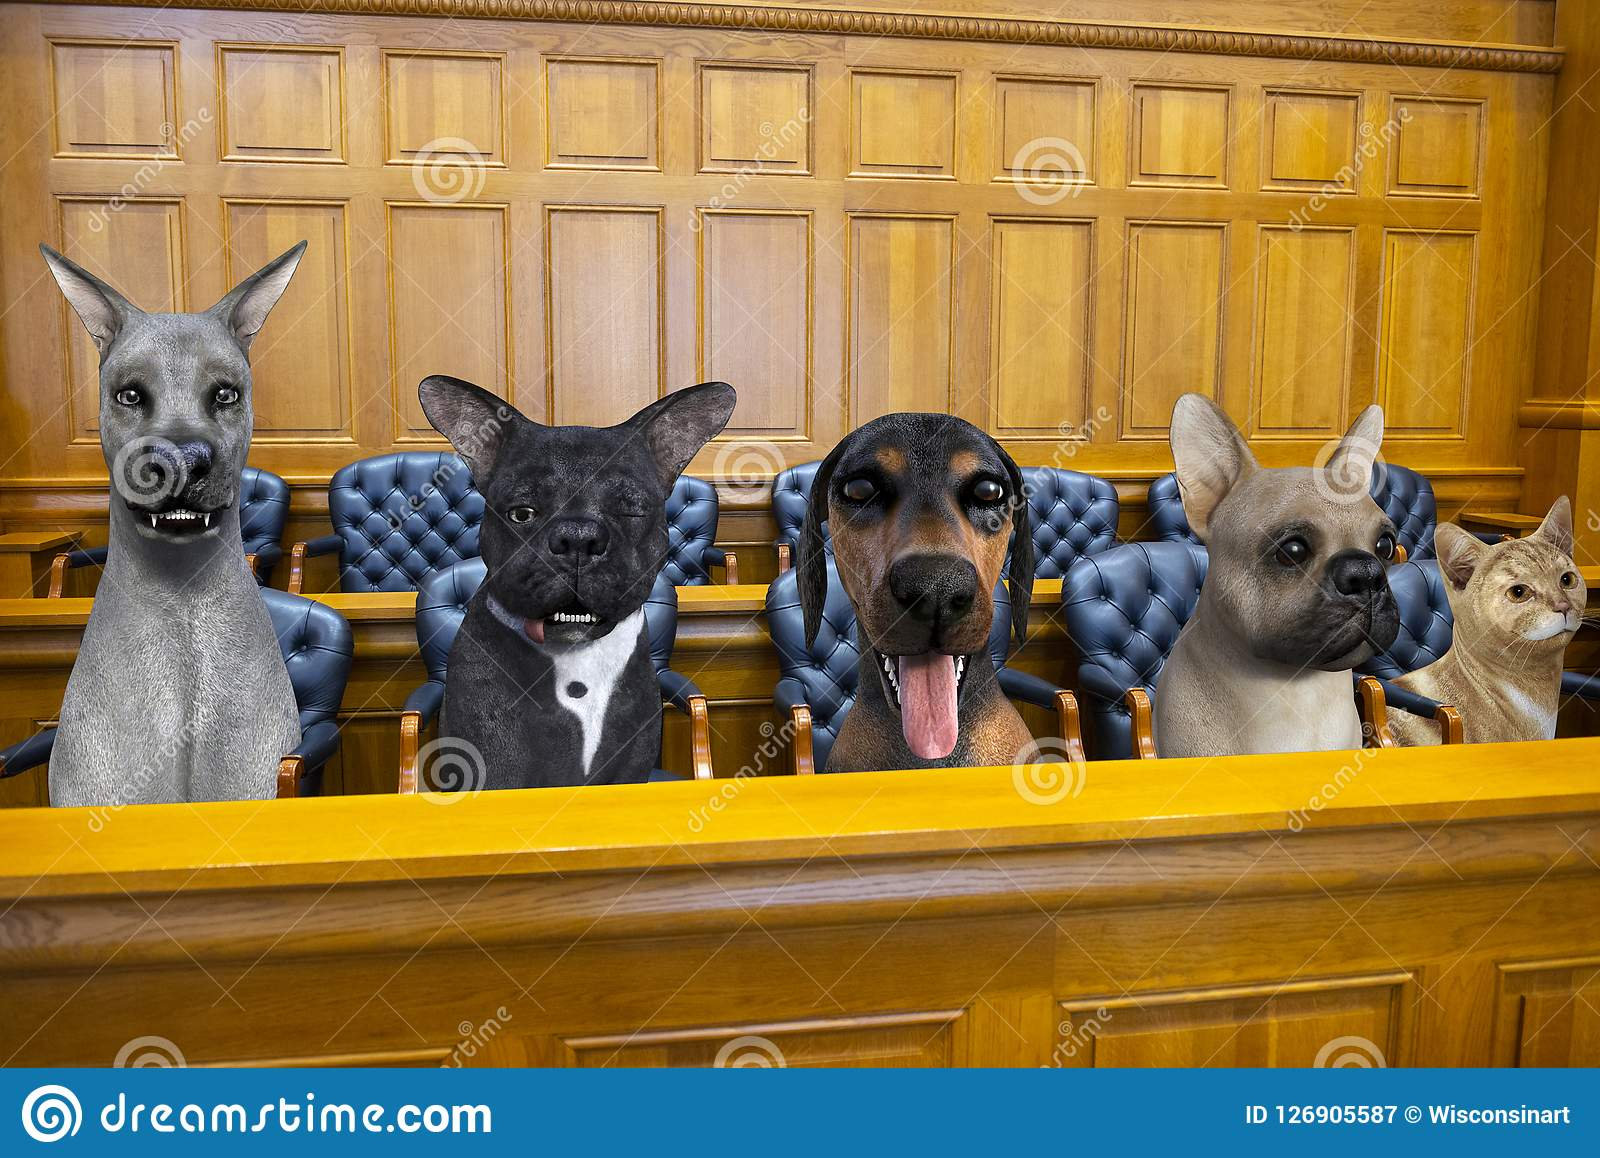 Funny Dog Cat Jury Courtroom Trial